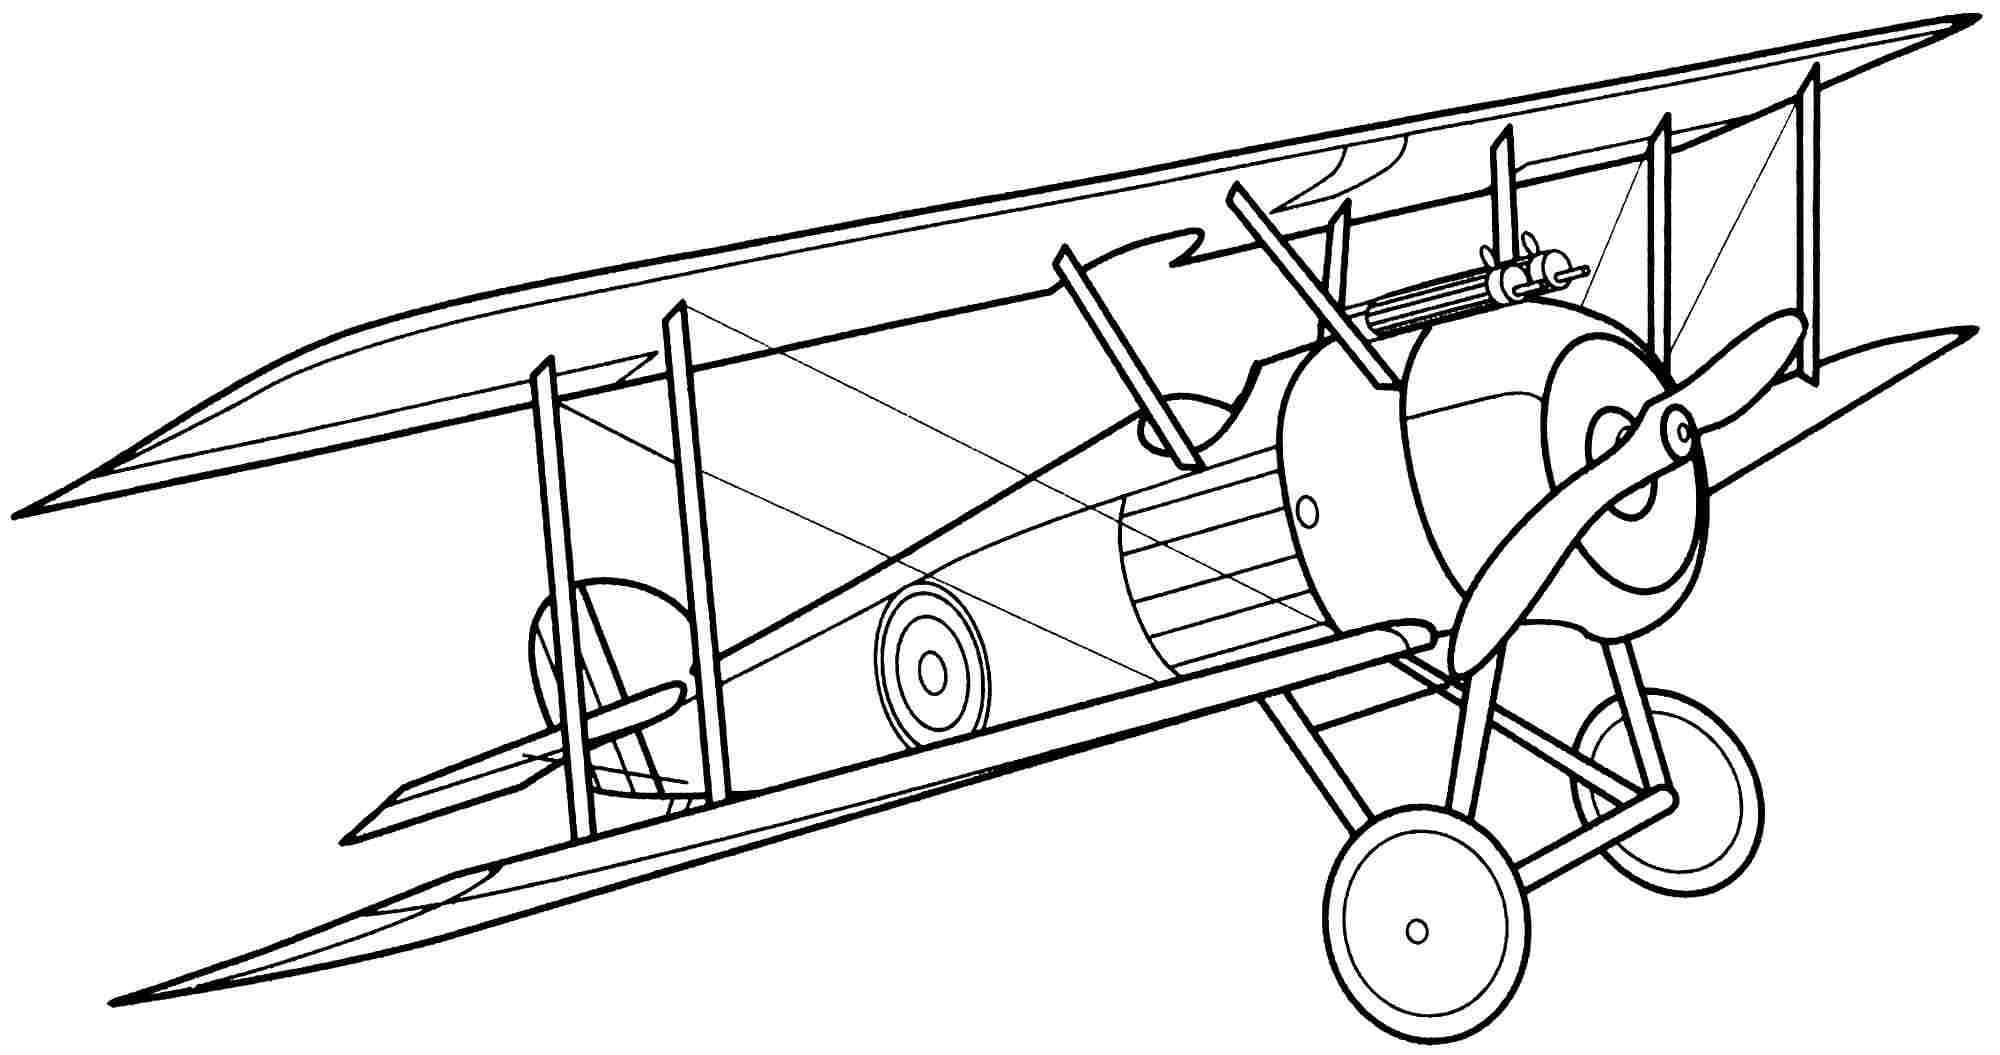 simple drawing of airplane airplane drawing simple at getdrawings free download simple airplane drawing of